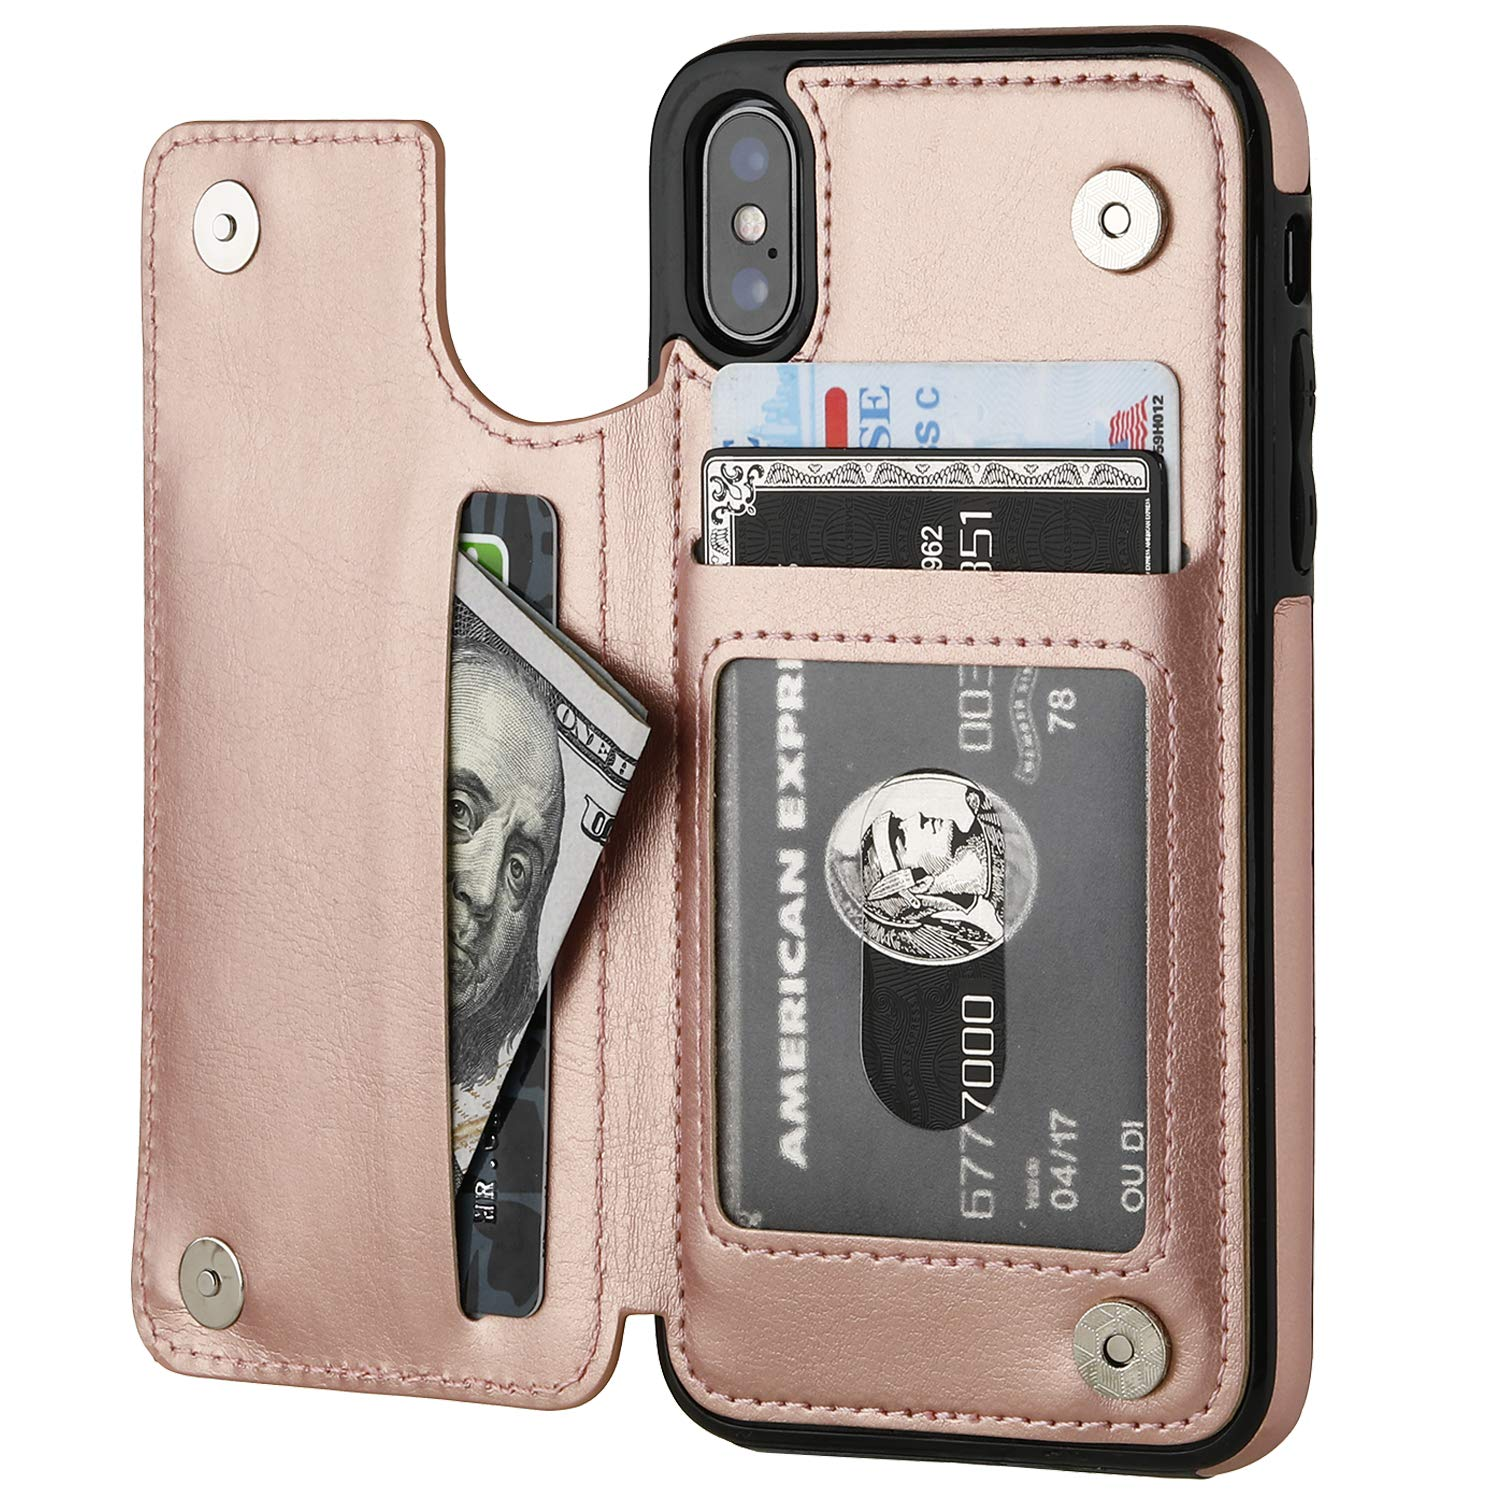 iPhone Xs iPhone X Wallet Case with Card Holder,OT ONETOP Premium PU Leather Kickstand Card Slots Case,Double Magnetic Clasp and Durable Shockproof Cover (iPhone X 5.8'' Rose Gold) by OT ONETOP